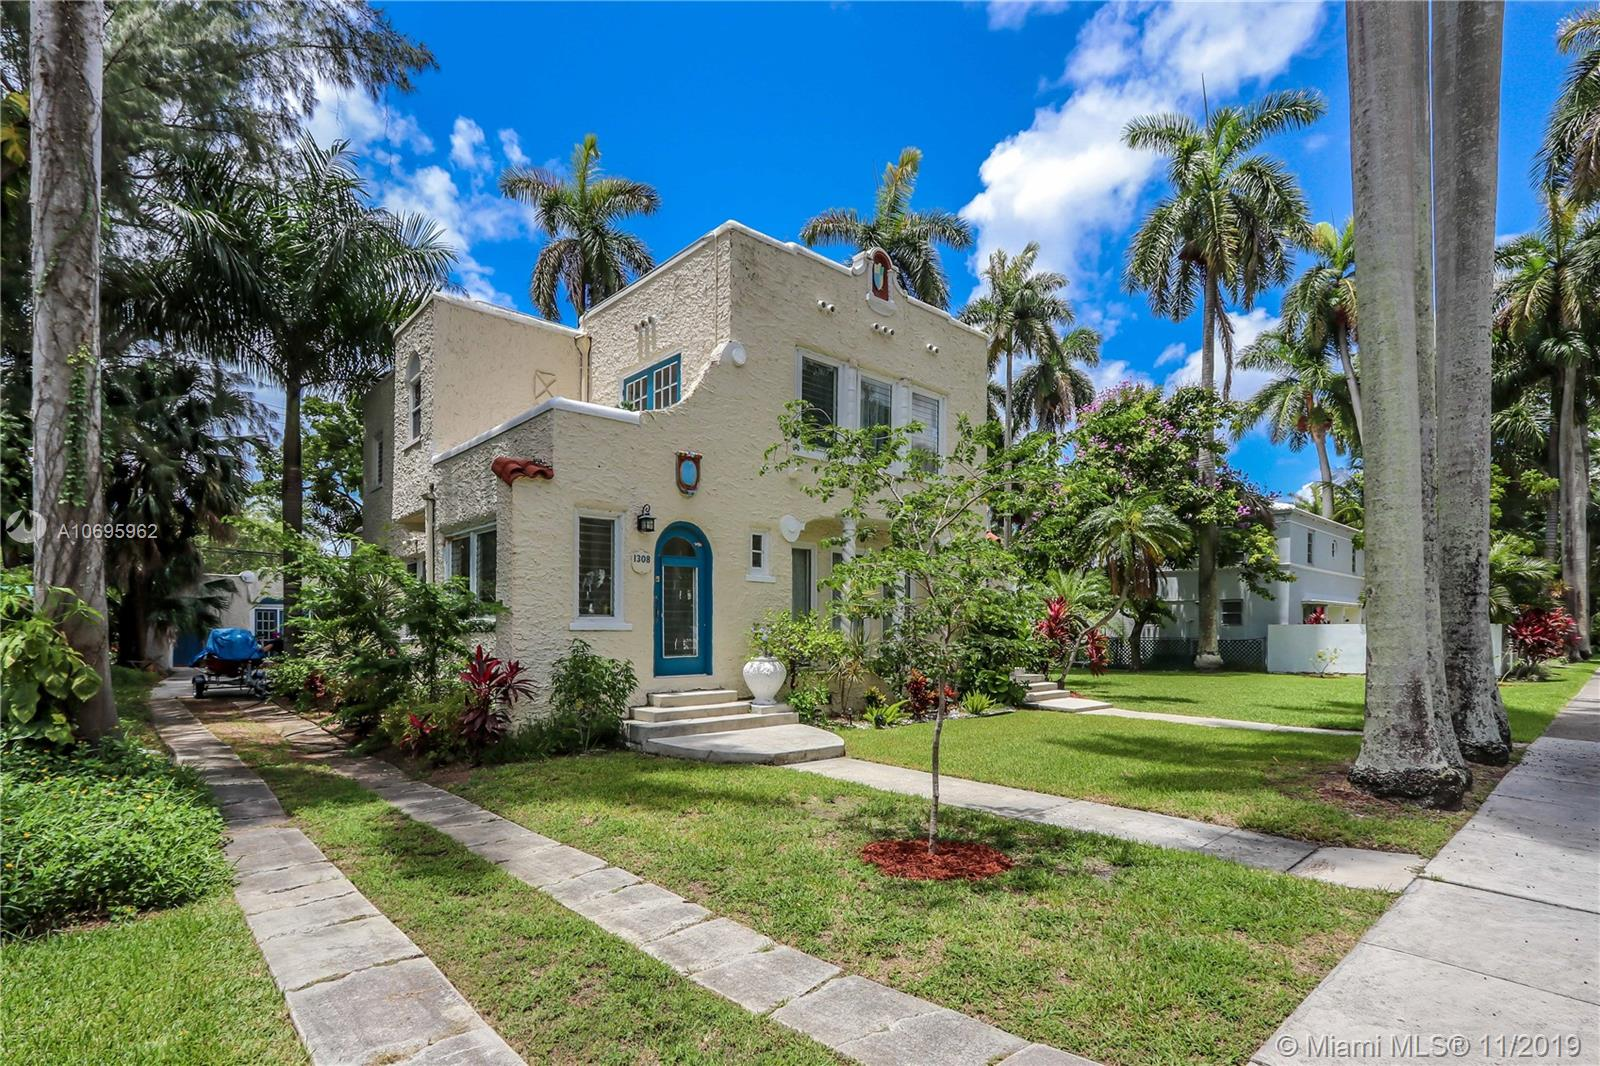 1308  Harrison St  For Sale A10695962, FL